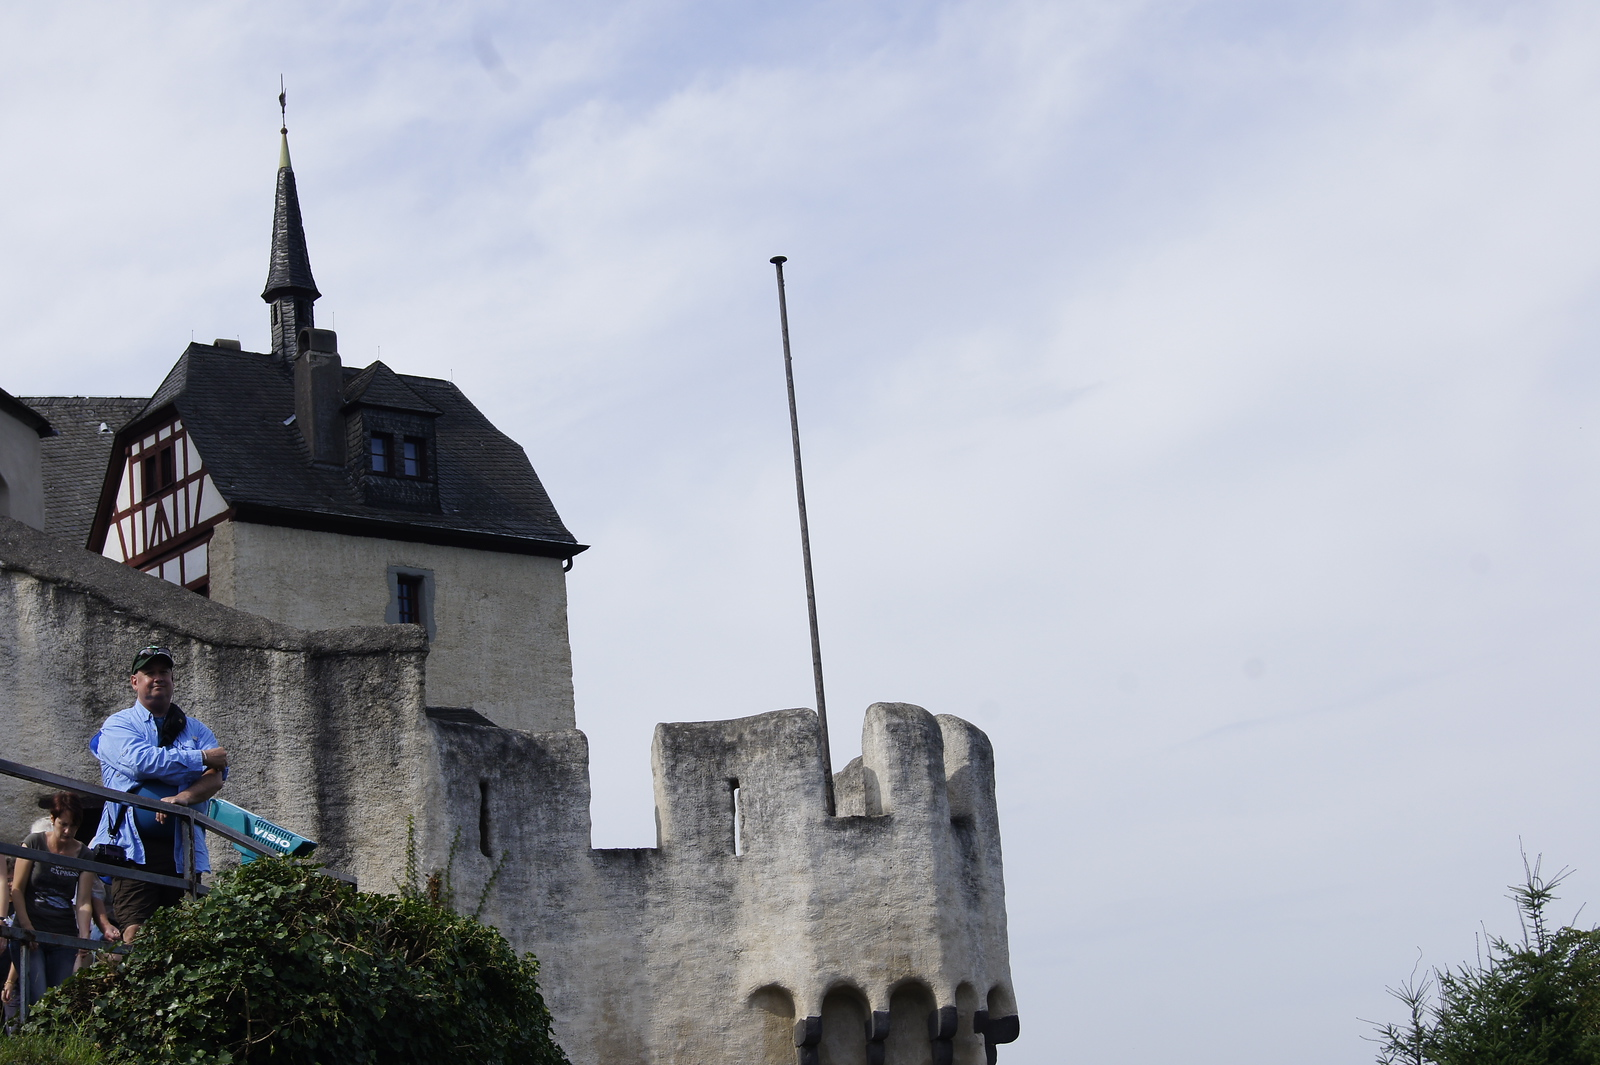 Marksburg castle, turret and balcony. Man stands in the foreground